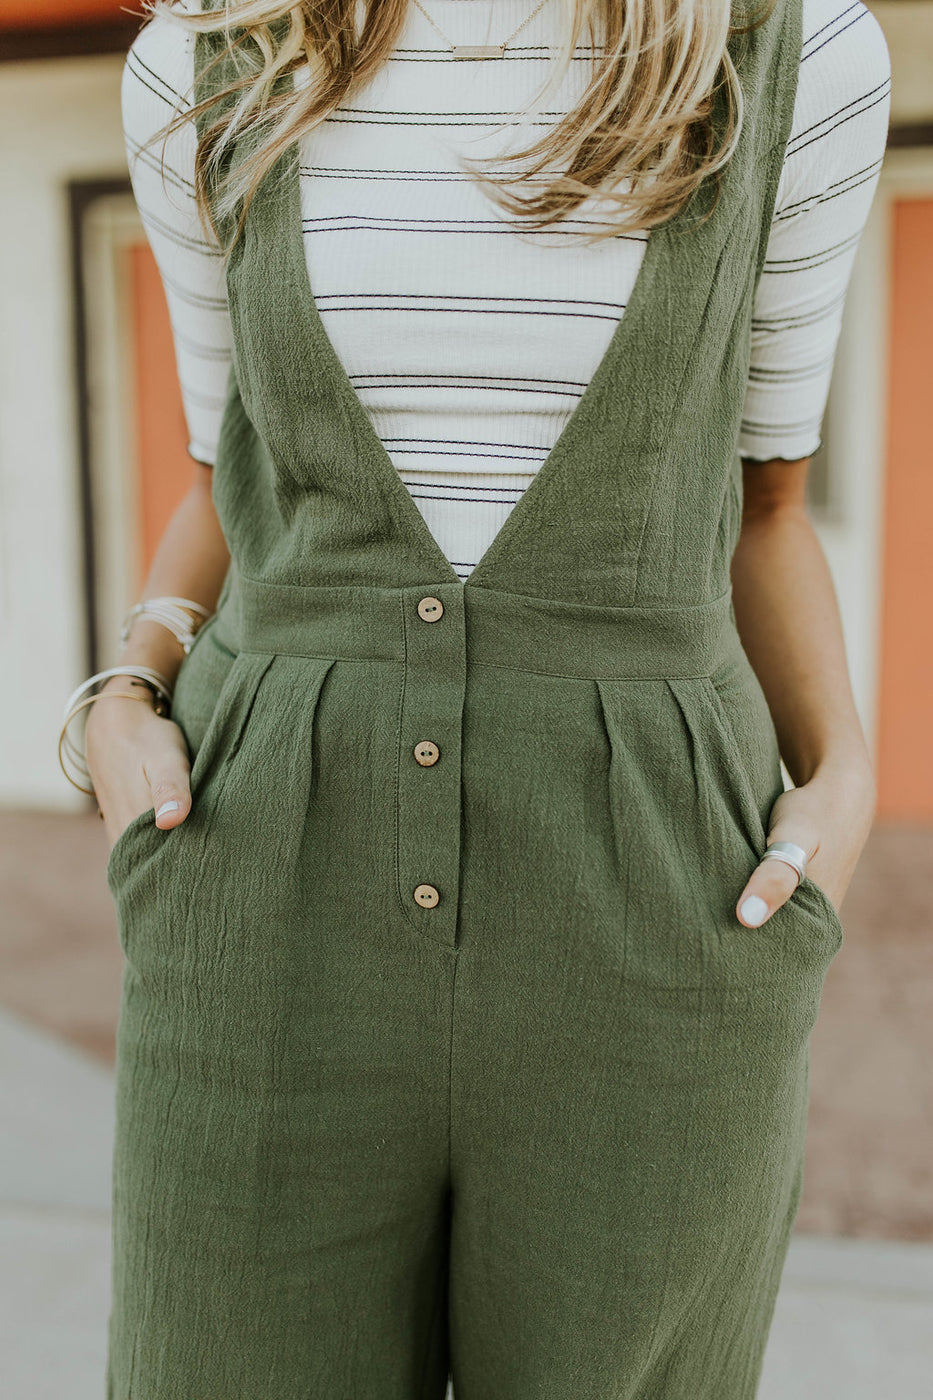 Picnic Outfit Ideas For Women | ROOLEE